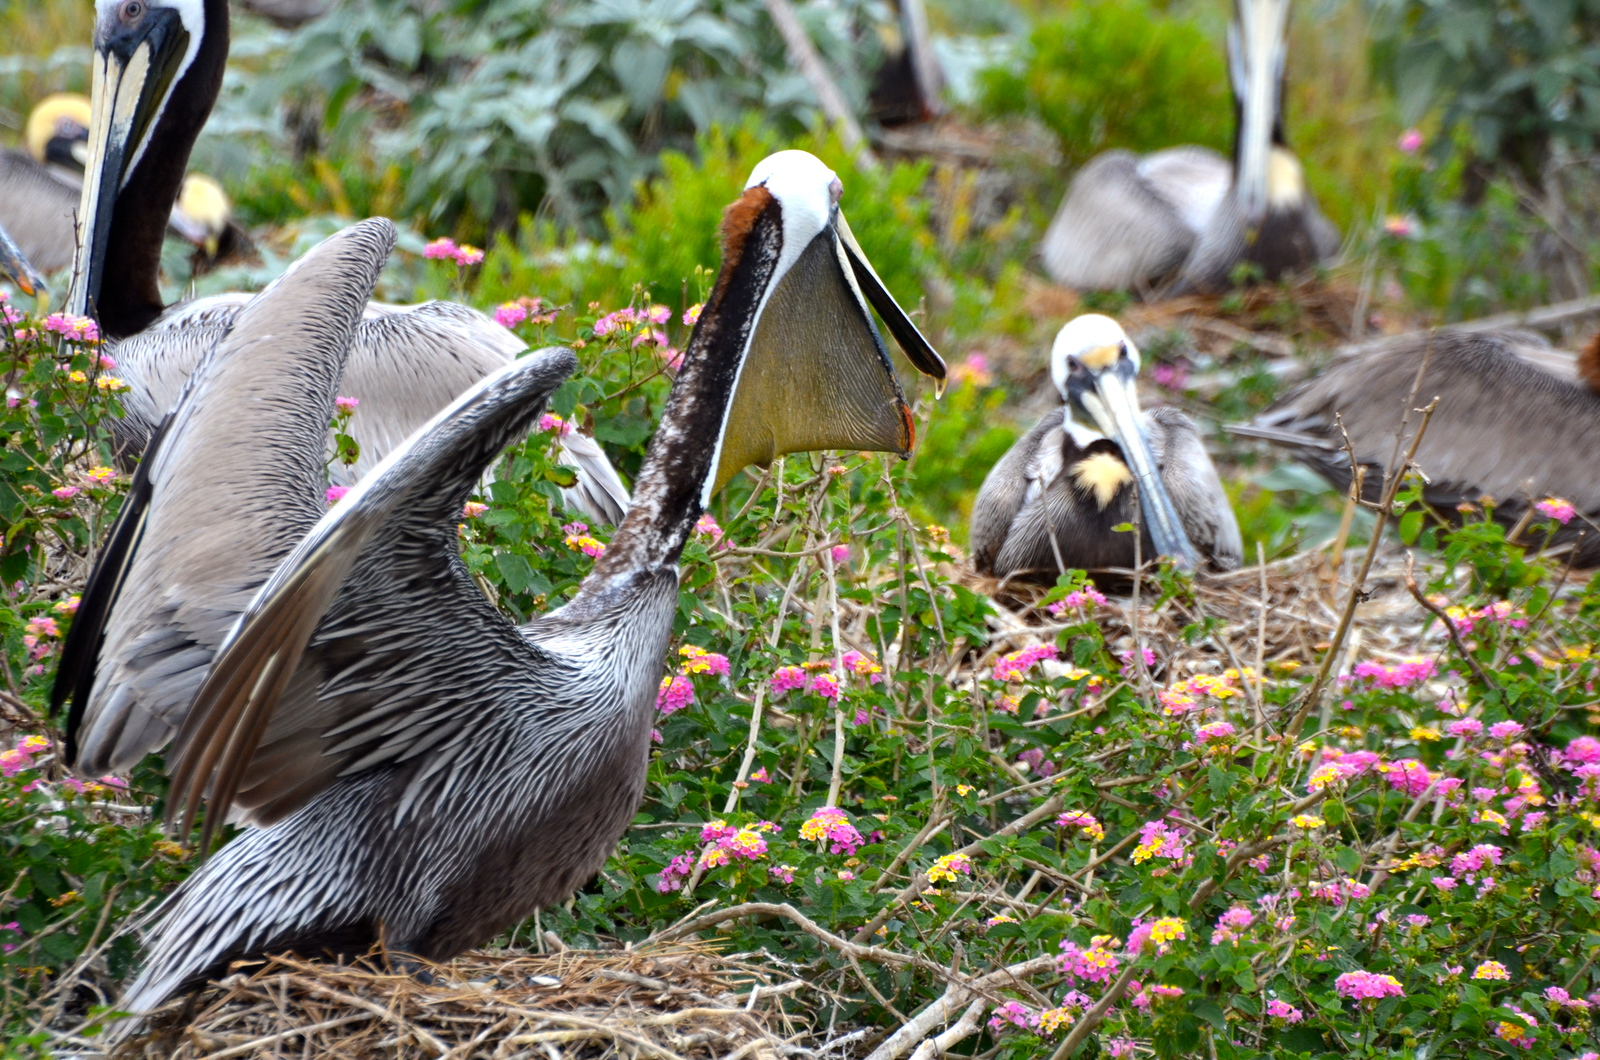 In years when the island gets enough rain, the Lantana can be prolific. Brown Pelicans love the nest in, around, and on top of the Lantana. <em>Photo credit: Peggy Wilkinson</em></div>